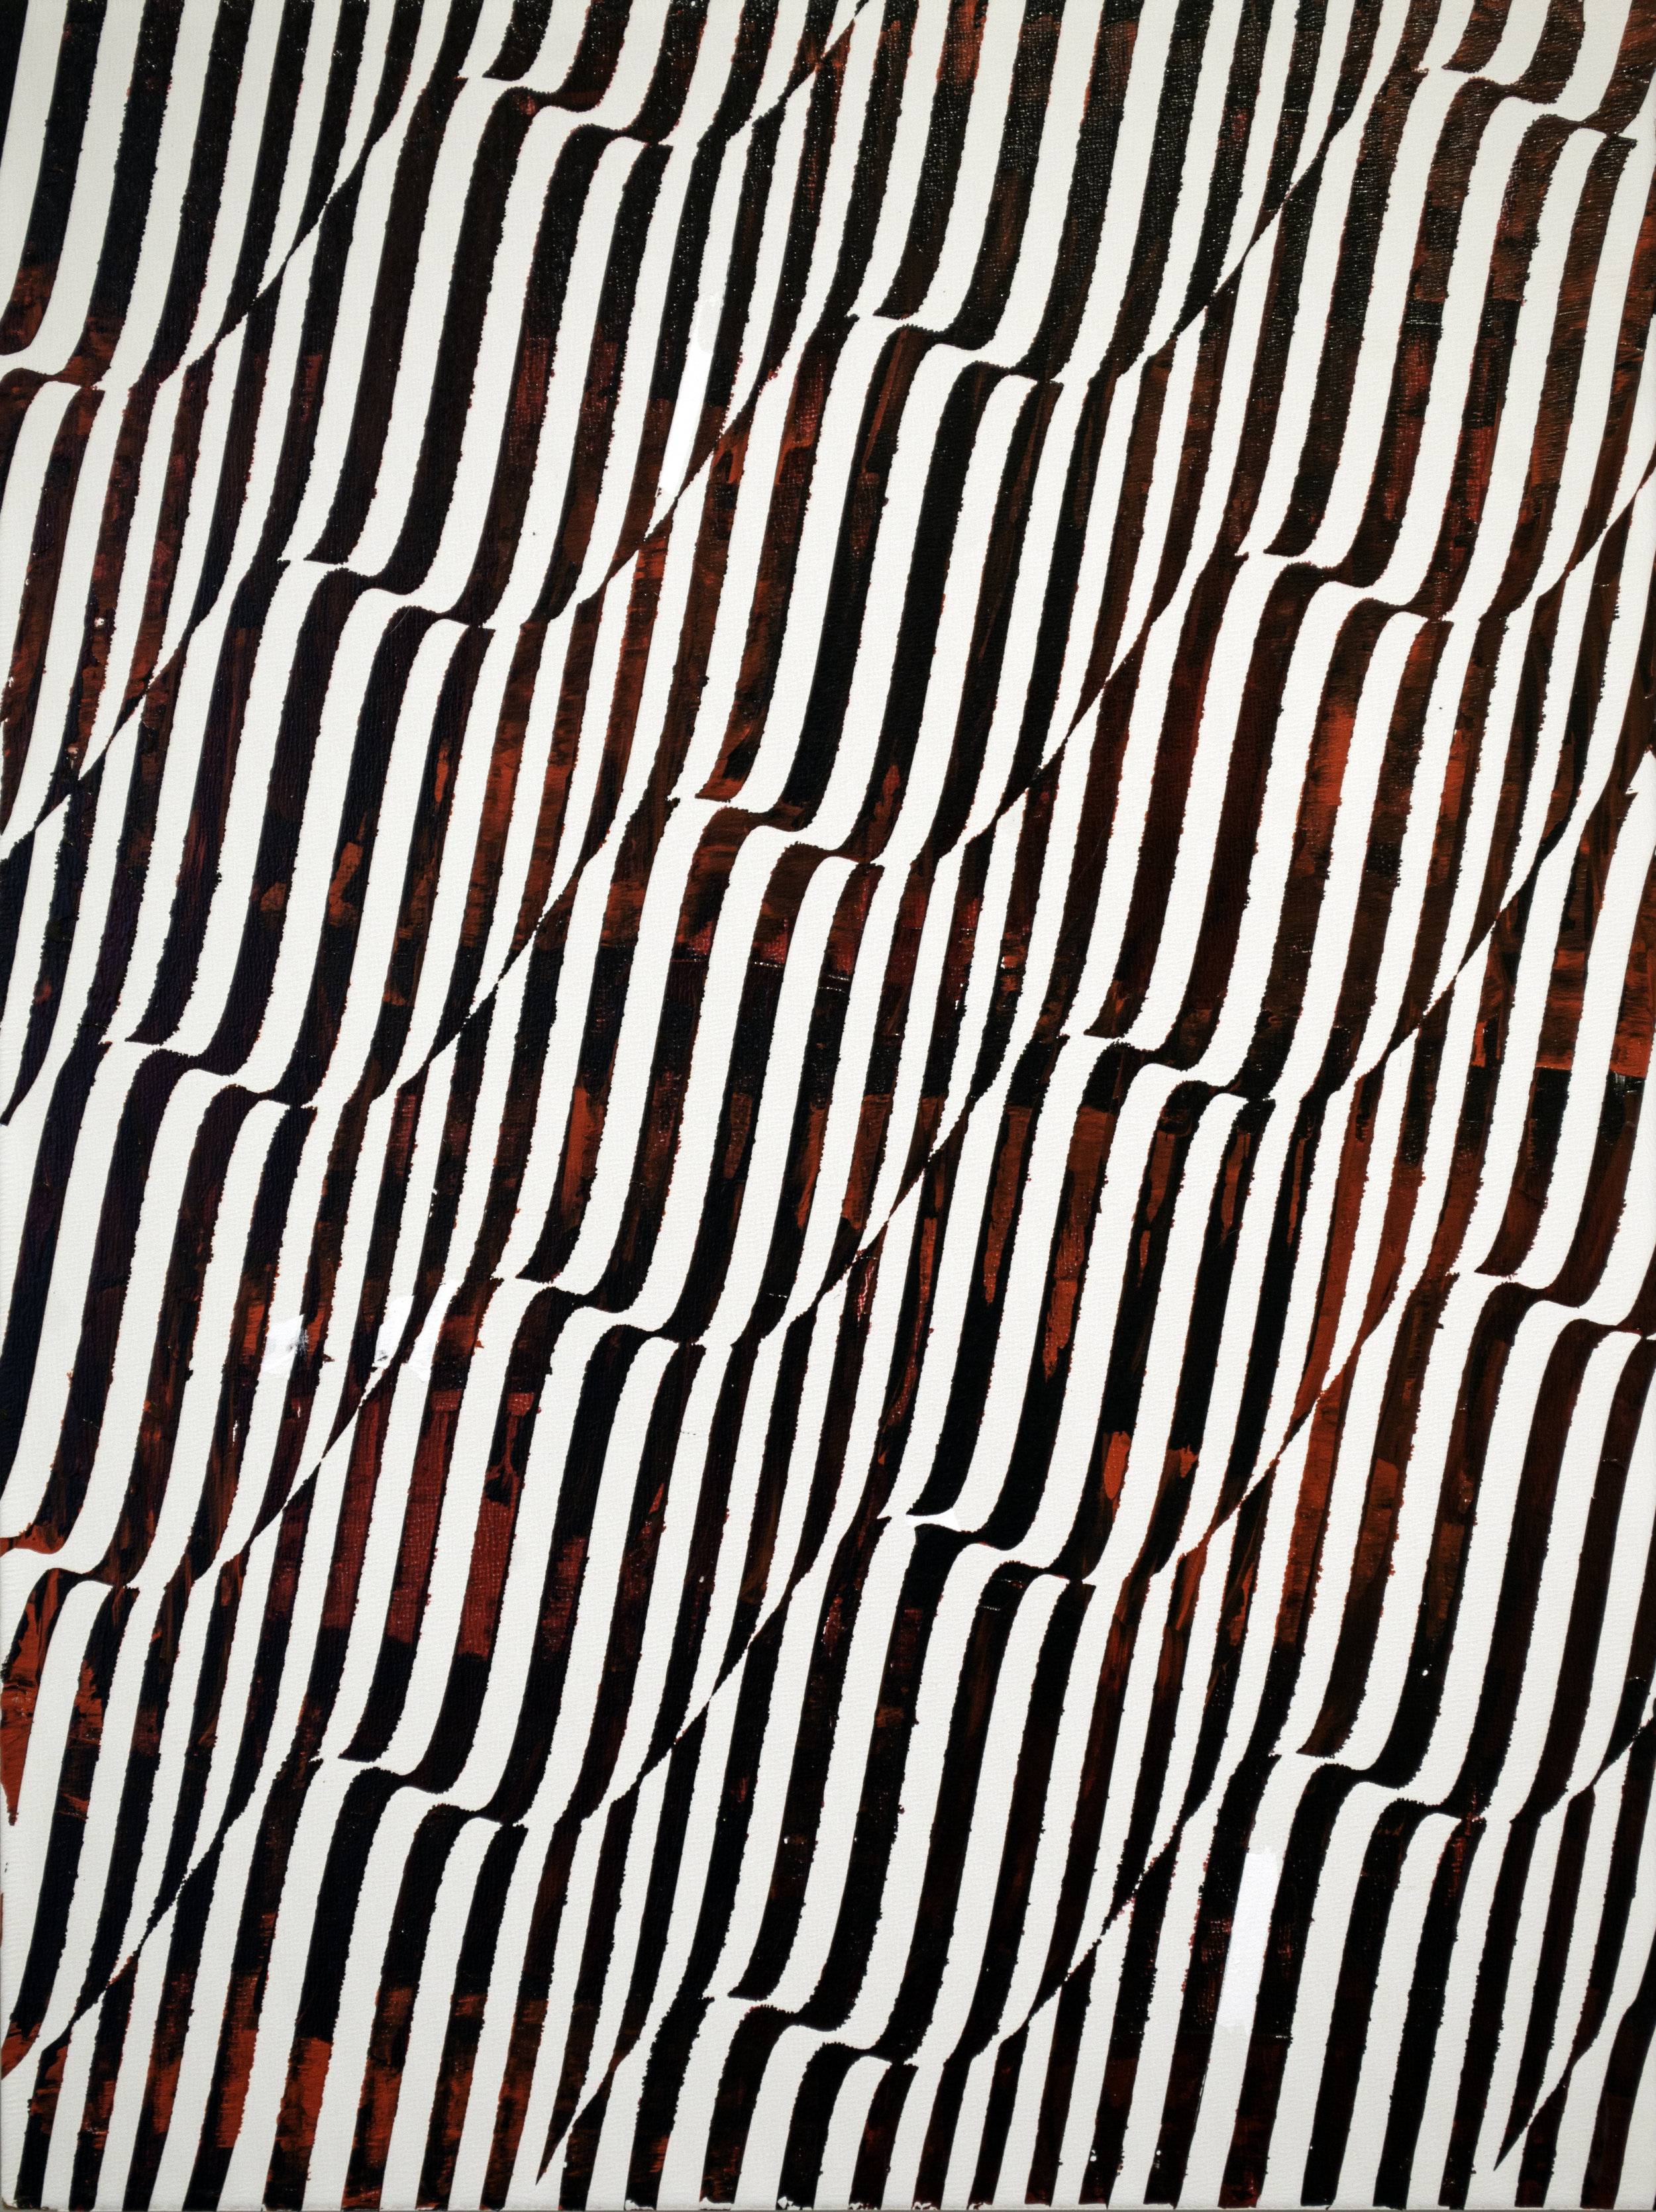 HUE Gallery of Contemporary Art - Sean Christopher Ward - The Bends - Acrylic on MDF - 12x16 - 2019 - $375.jpg